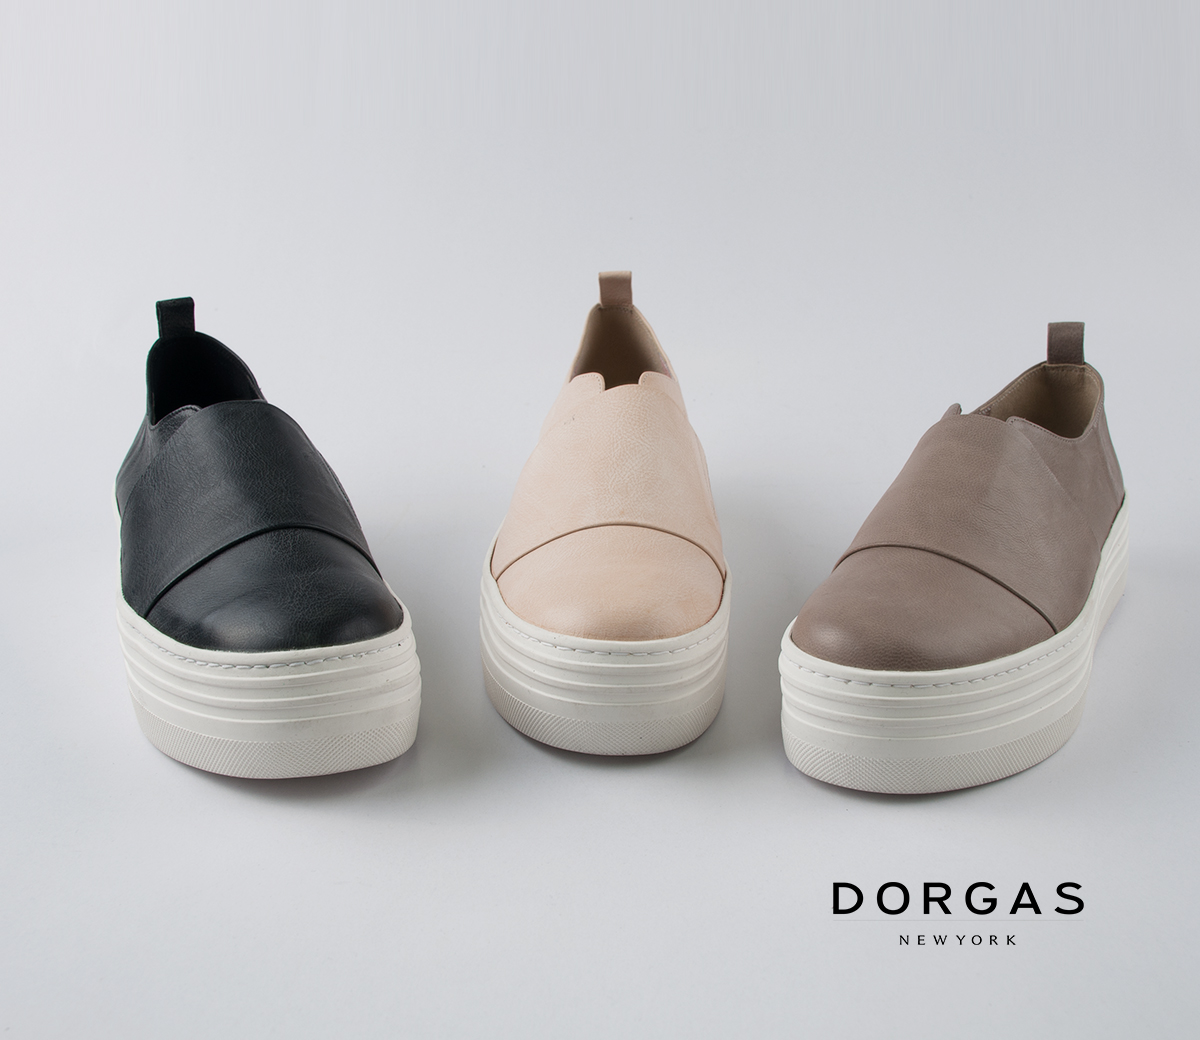 DN304 Shoes